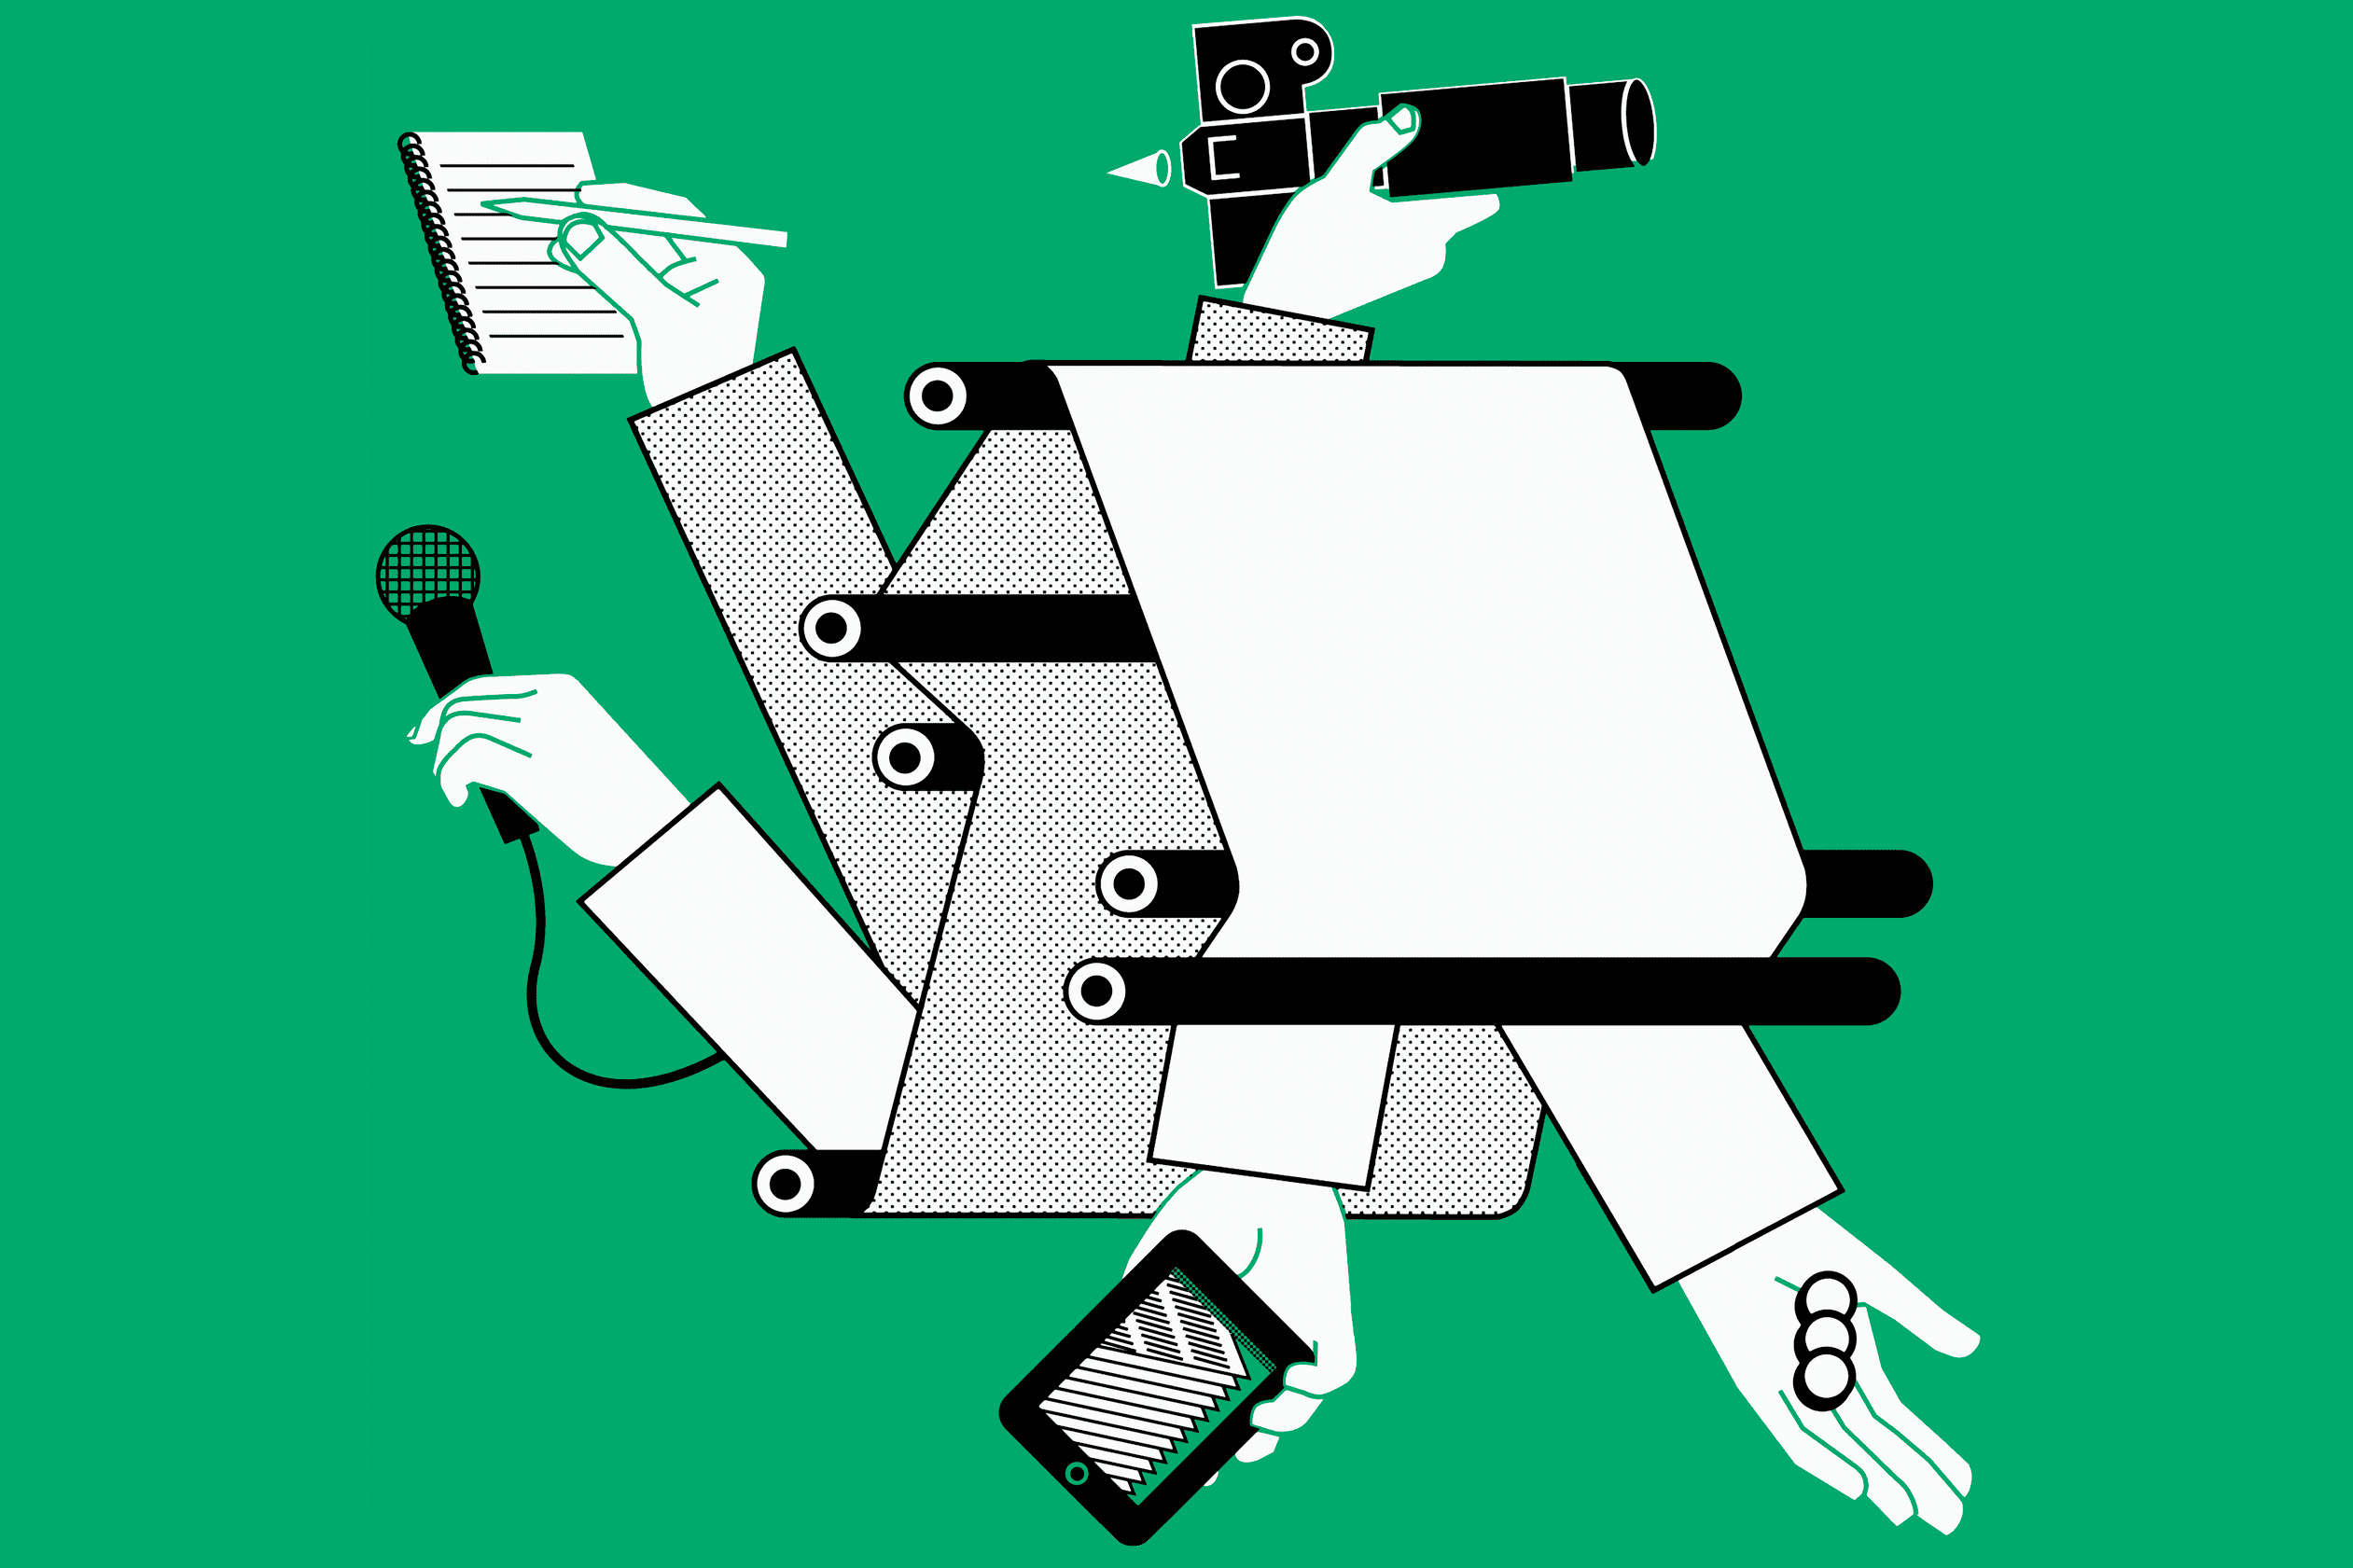 Printed newspaper and mobile technology illustration